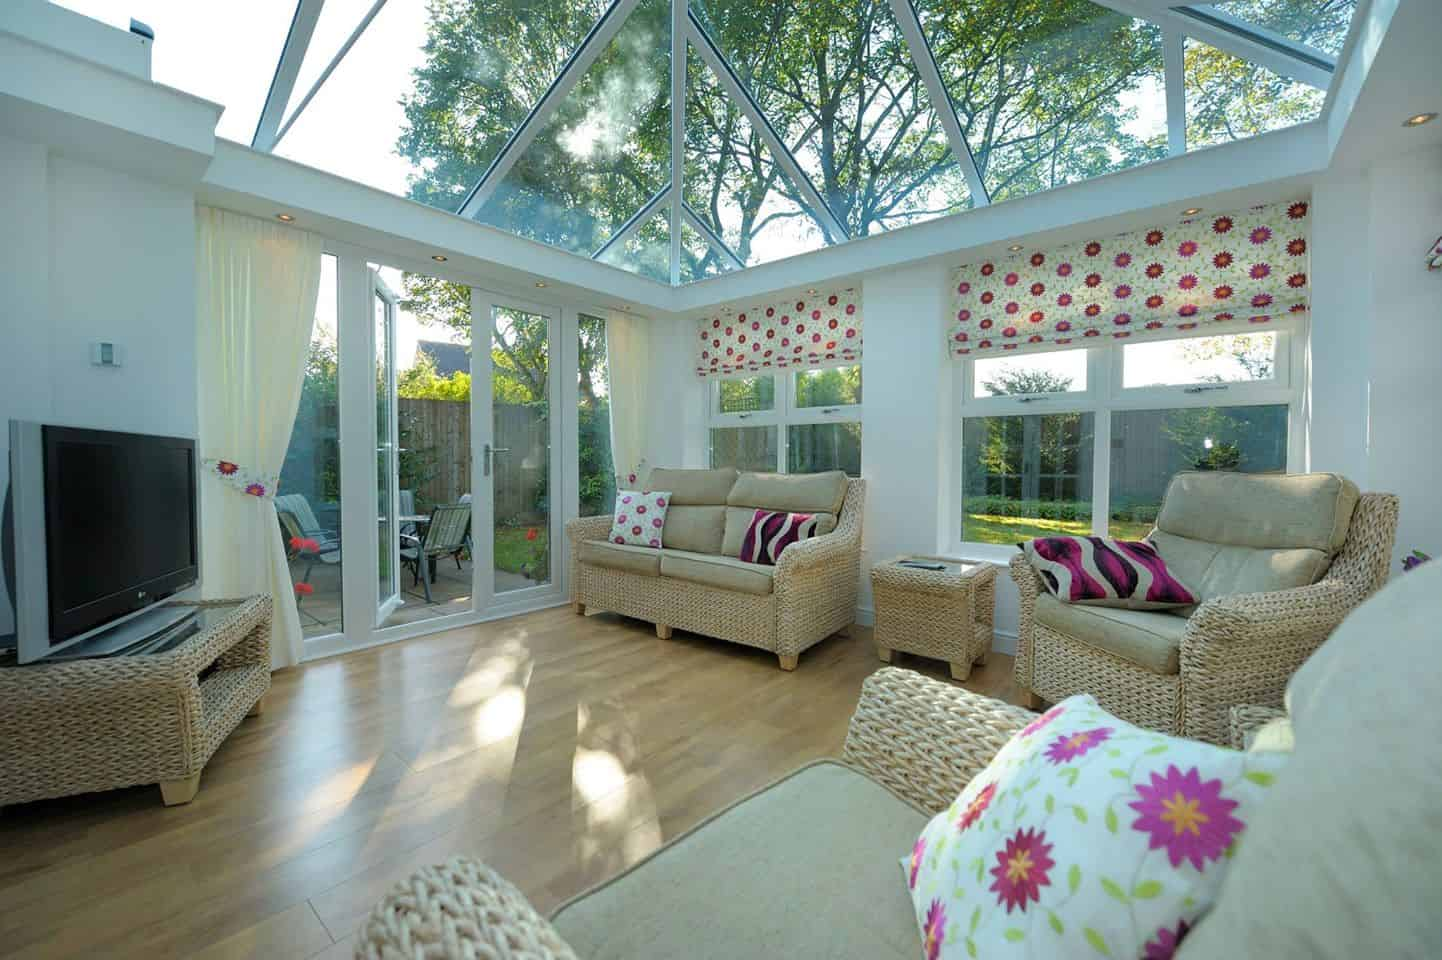 leeds-energy-efficient-orangeries